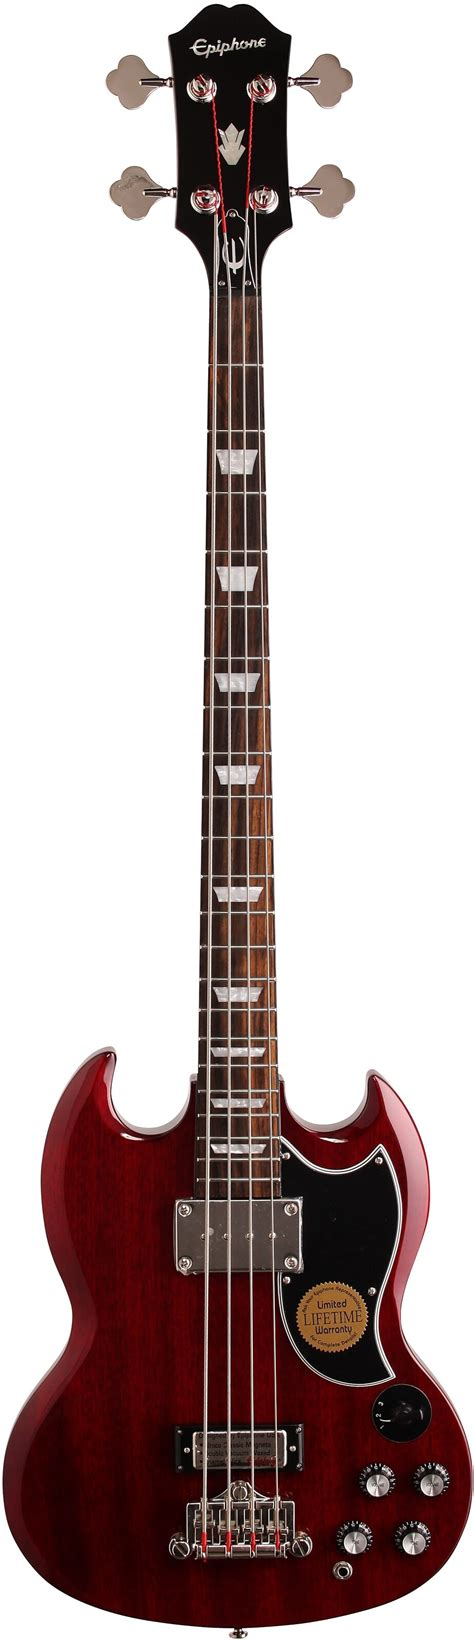 Epiphone EB-3 Electric Bass | zZounds